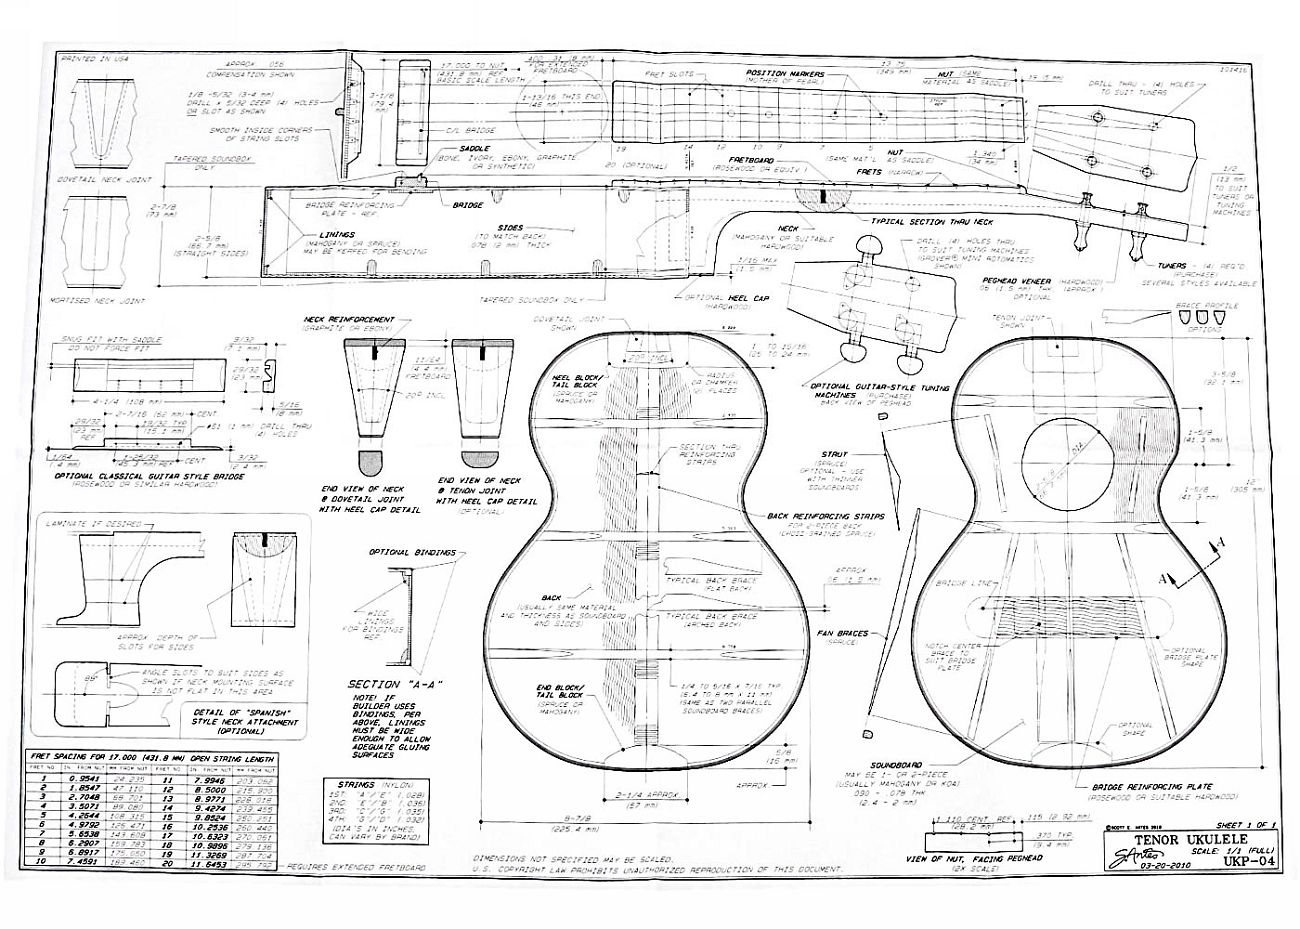 Full size blueprint for tenor ukulele full size blueprint for tenor ukulele by scott antes with construction options and notes malvernweather Gallery